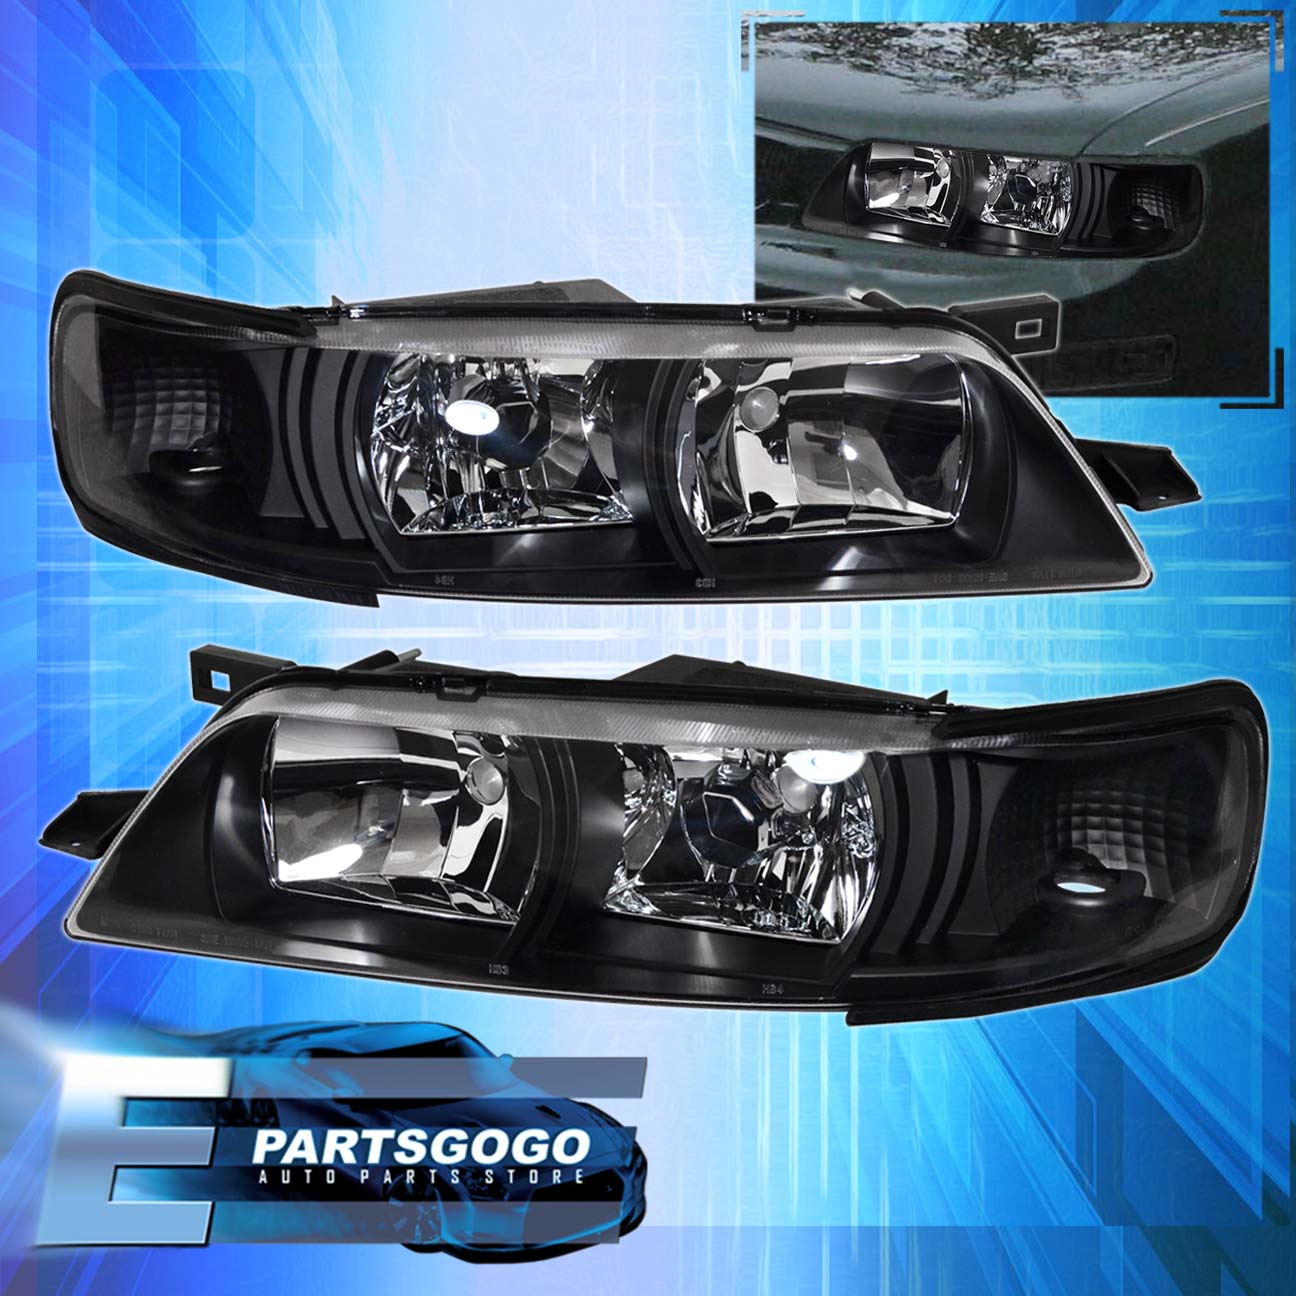 Details About Black Headlight Lamp For 1995 1996 1997 1998 1999 Nissan Maxima Clear Reflectors